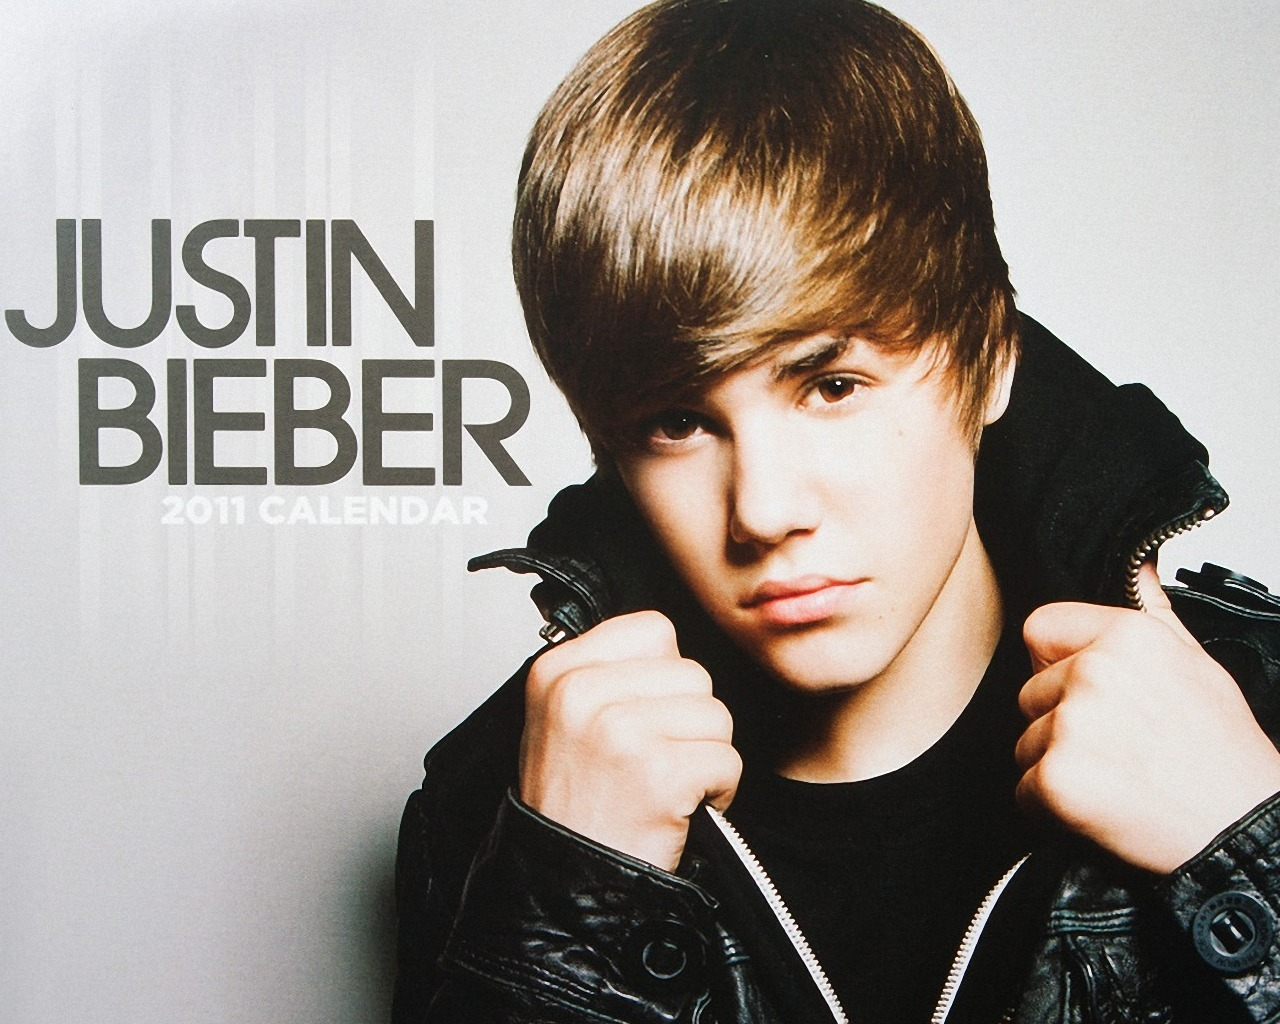 Justin Bieber Images Justin Bieber Hd Wallpaper And